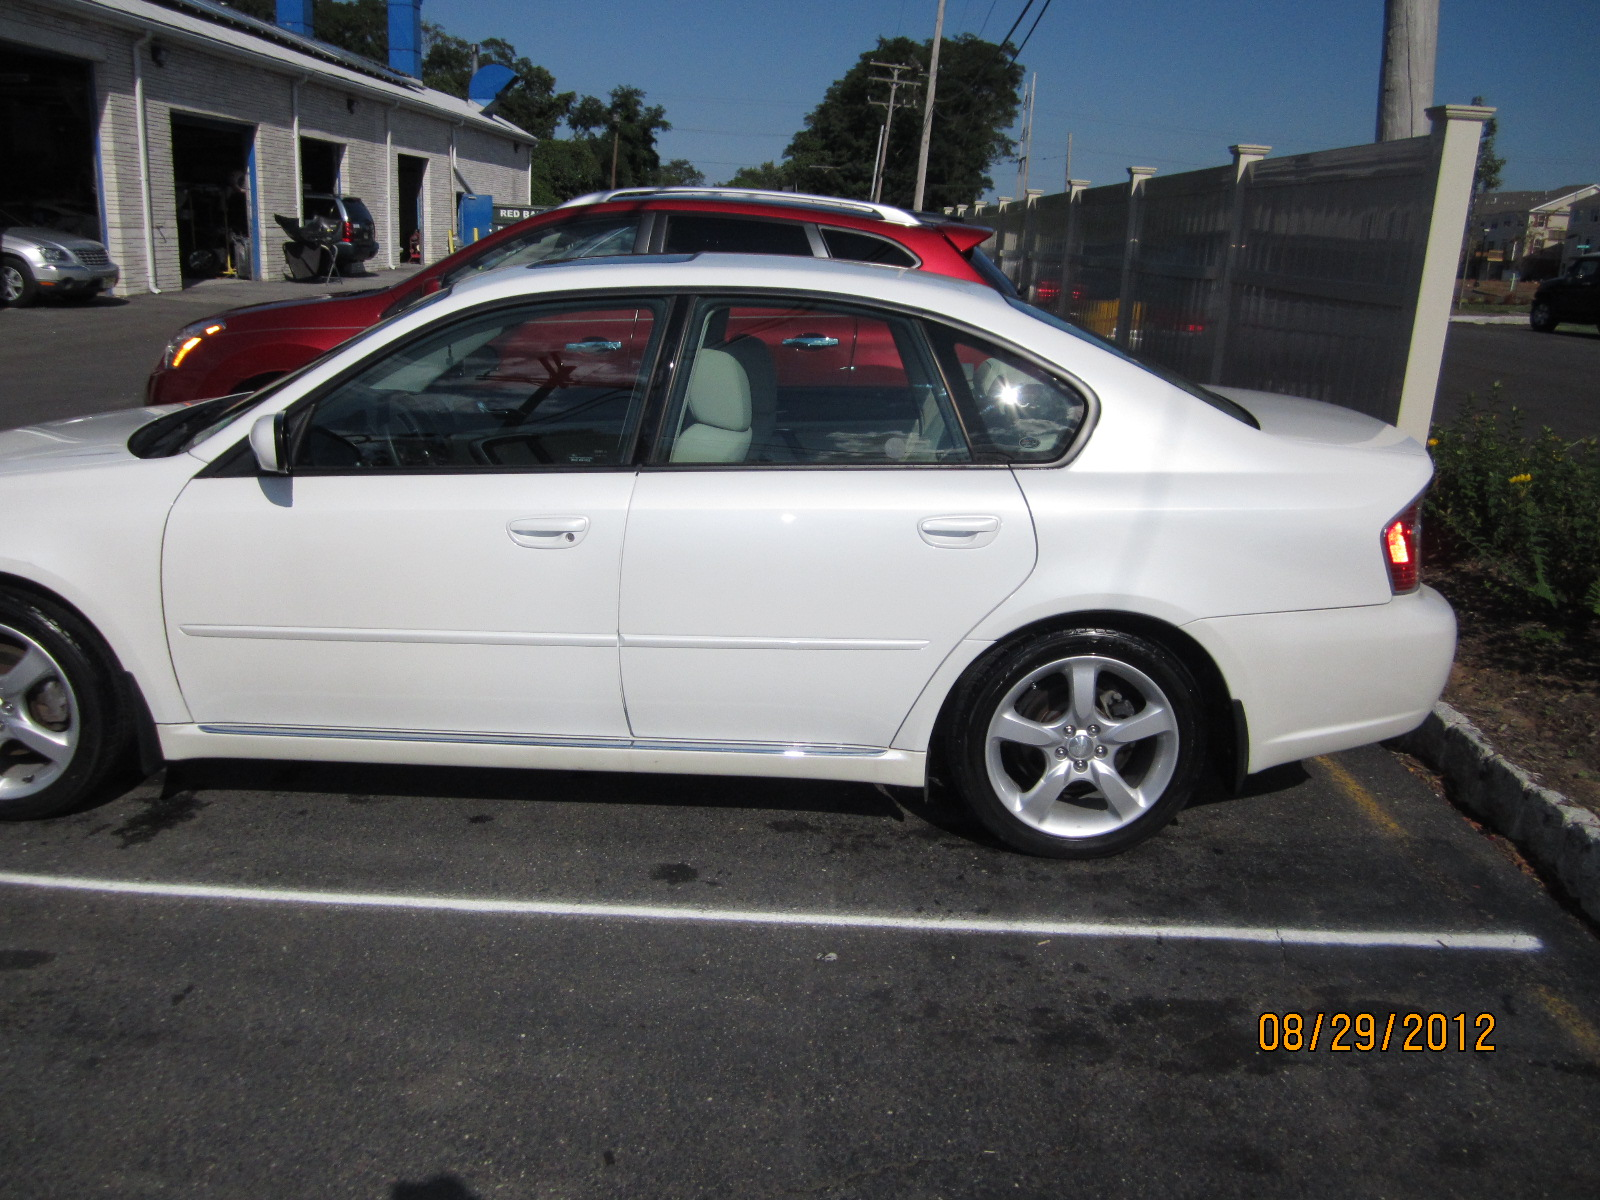 2006 subaru legacy before after photos auto body repair collex collision experts. Black Bedroom Furniture Sets. Home Design Ideas